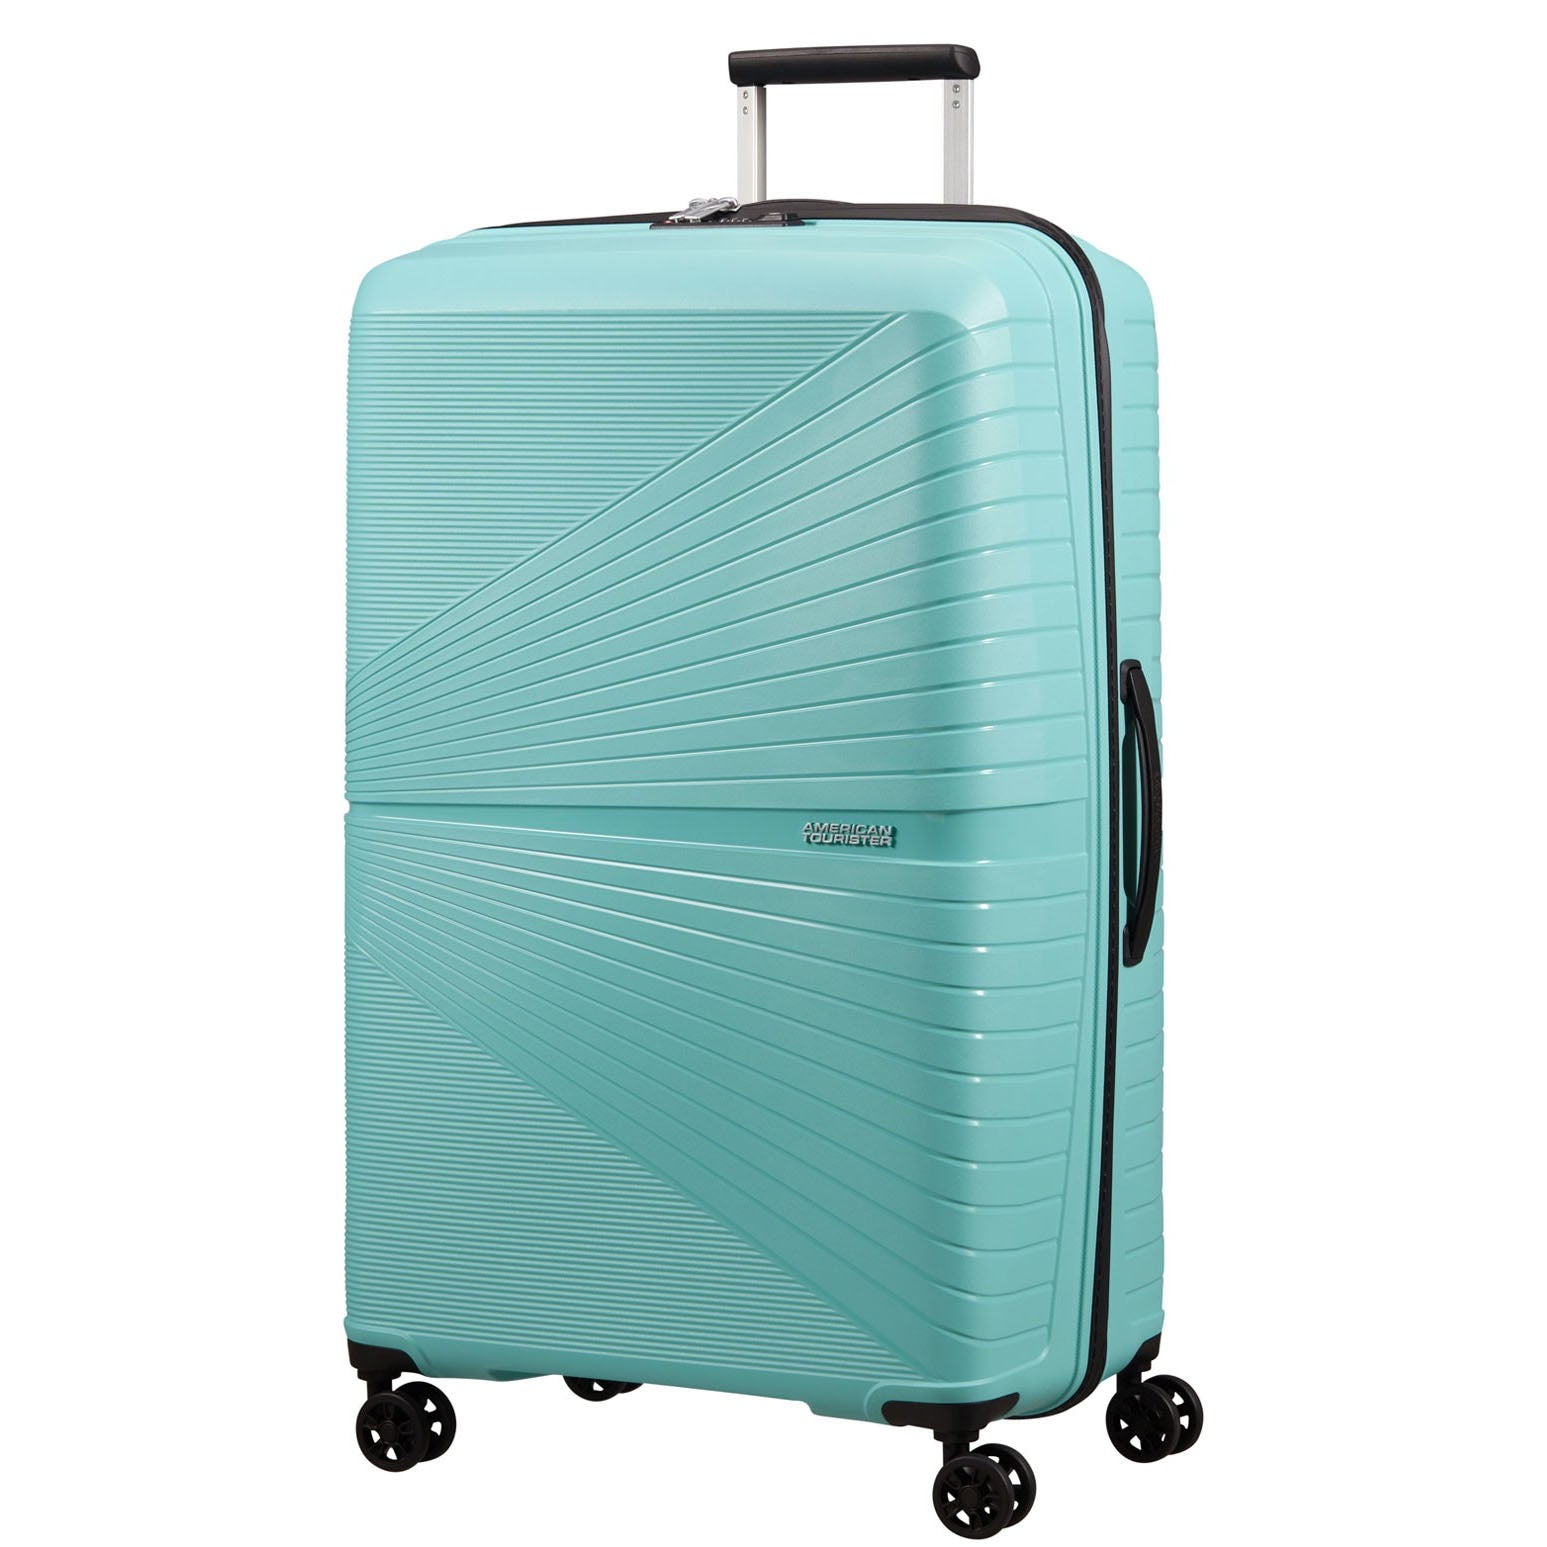 American Tourister Airconic 77cm Large Suitcase